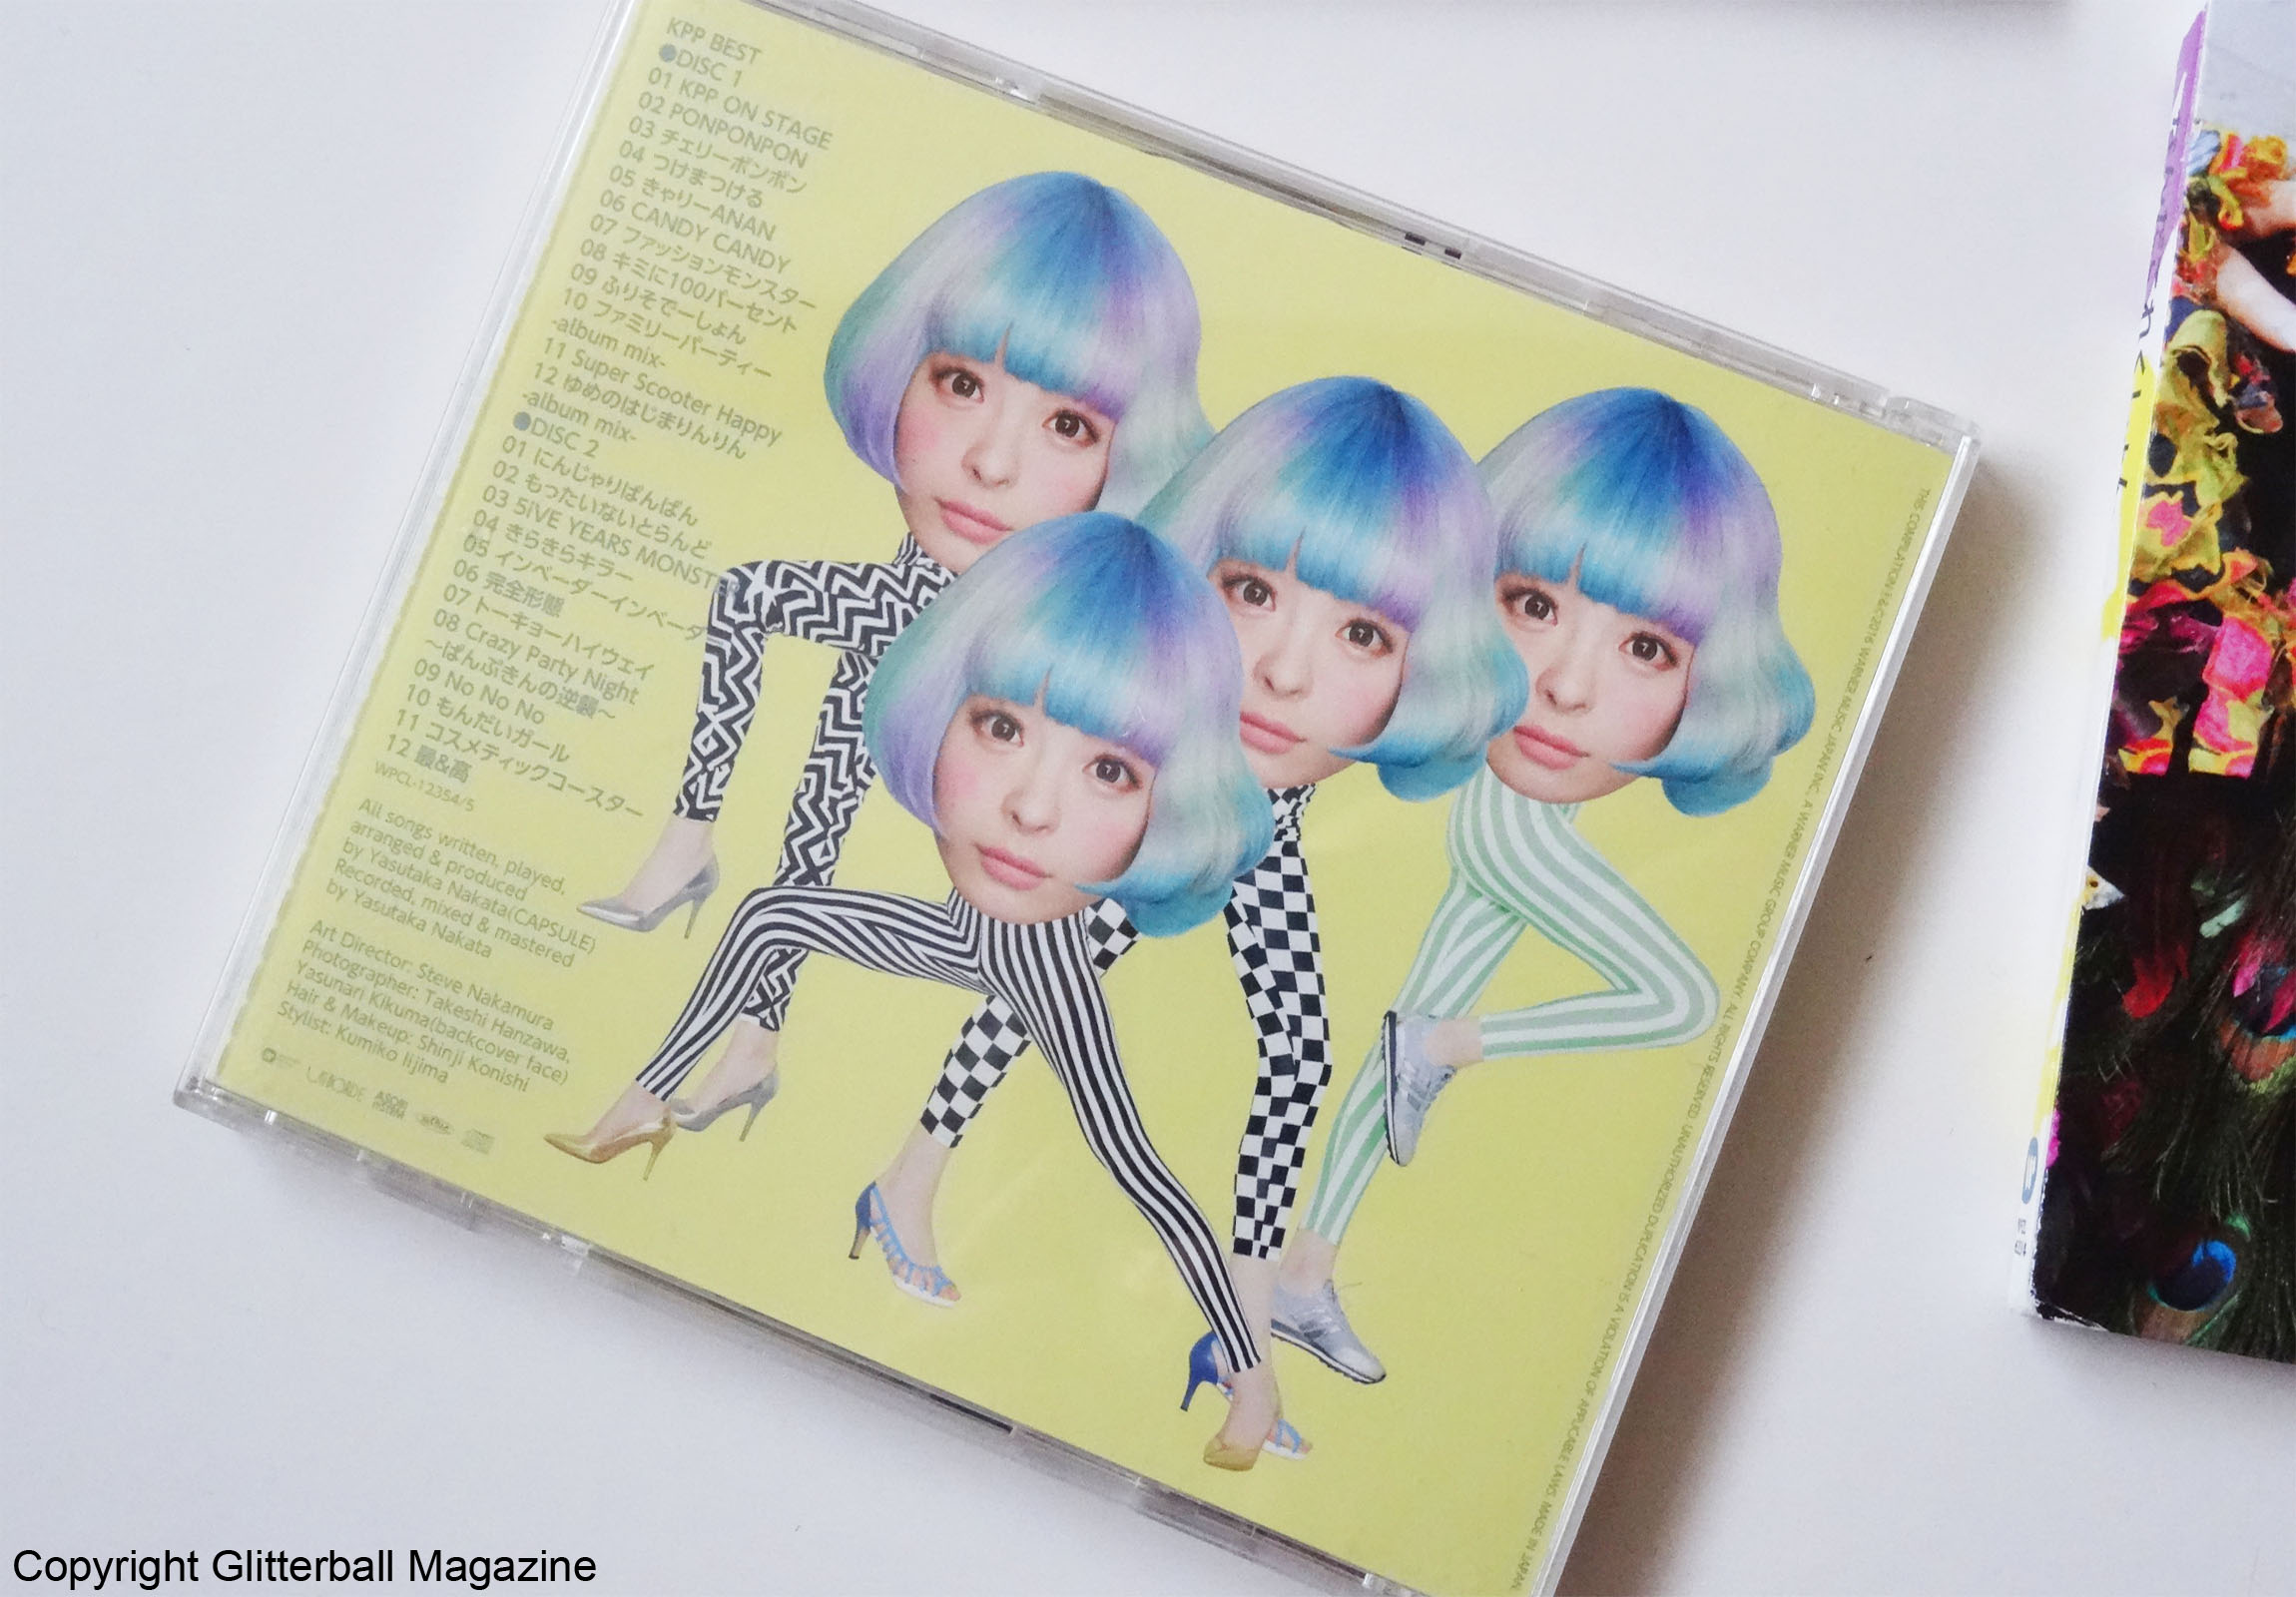 NYLON JAPAN KYARY PAMYU PAMYU J-POP CD BACK COVER